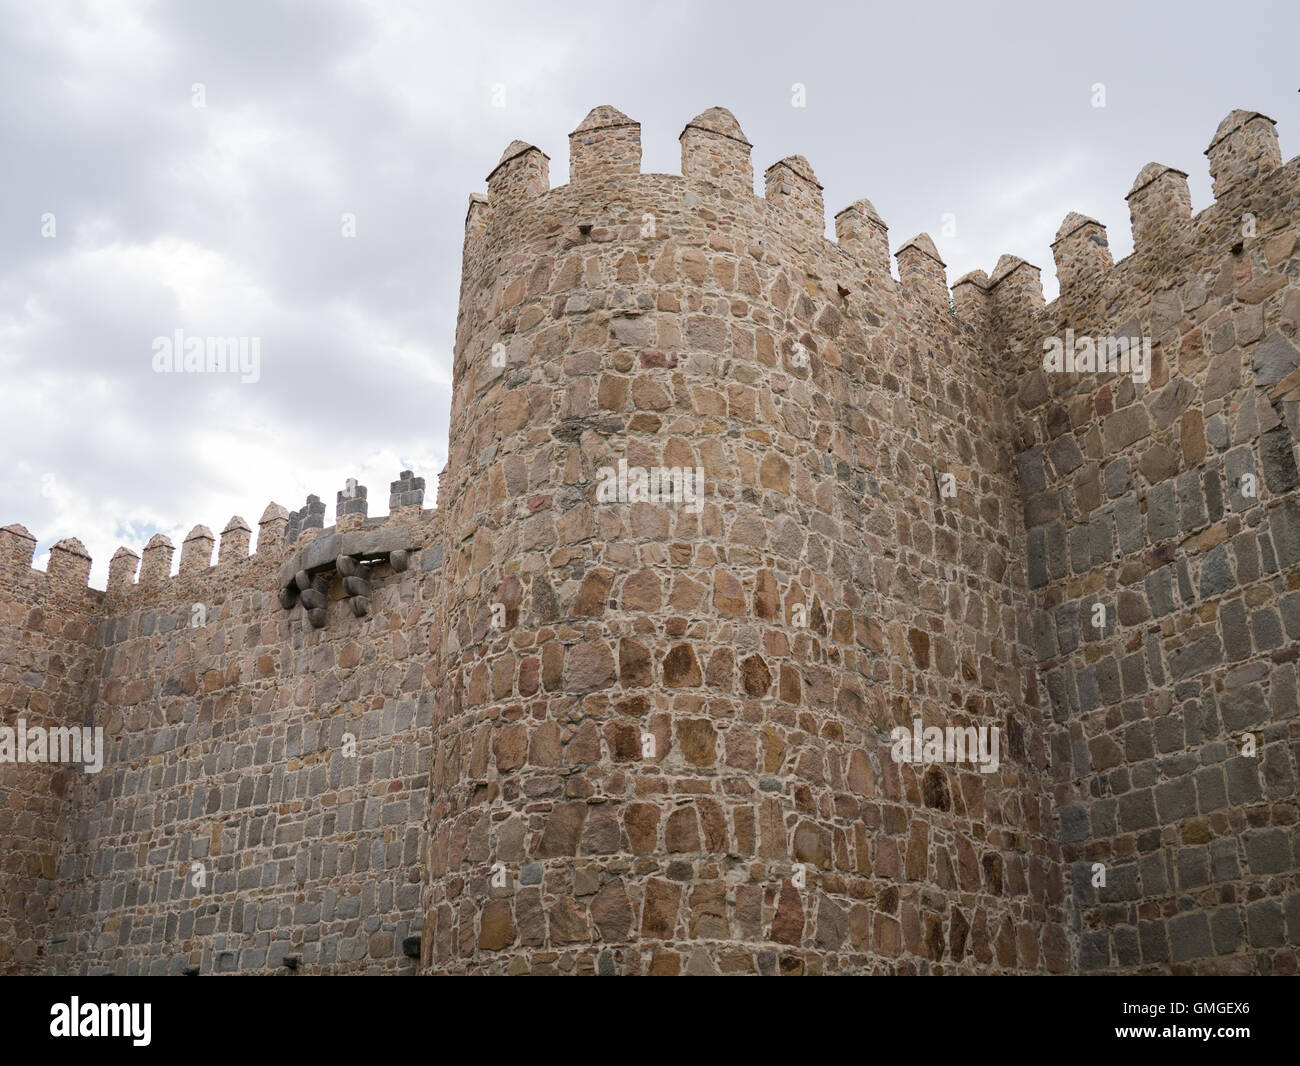 The medieval walls of Ávila, Castile and Leon, Spain Stock Photo